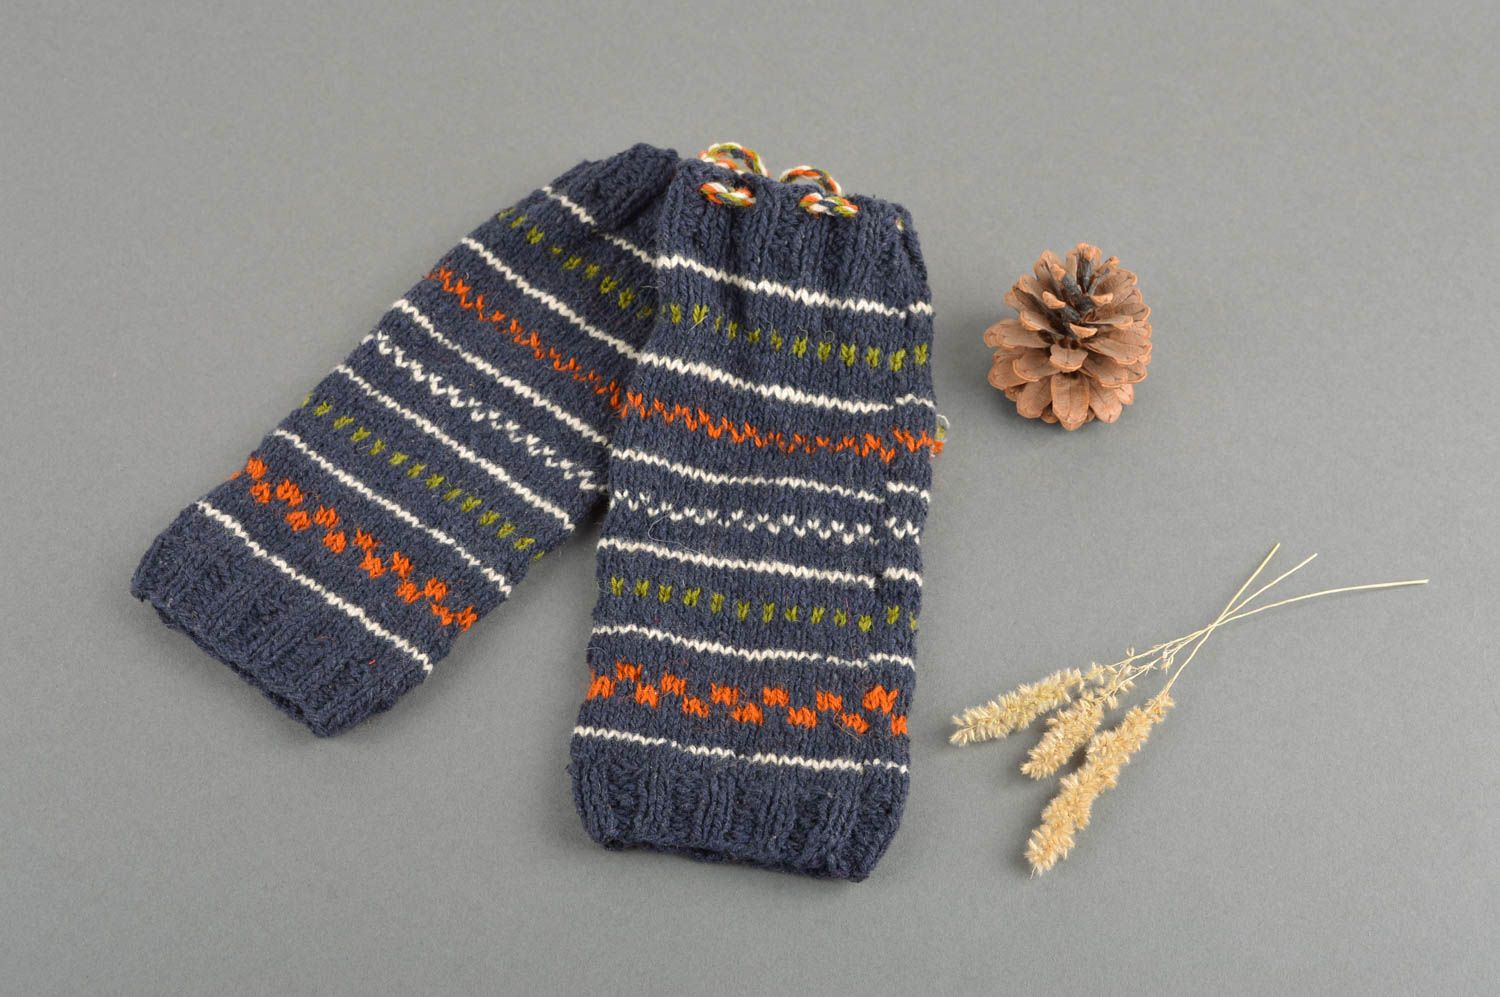 Notice: Undefined variable: cat in /home/newmadeheart/prod/cache/volt/%%home%%newmadeheart%%prod%%app%%views%%product%%index.volt.php on line 139  Handmade knitted socks warm woolen winter socks winter accessories for women - MADEheart.com